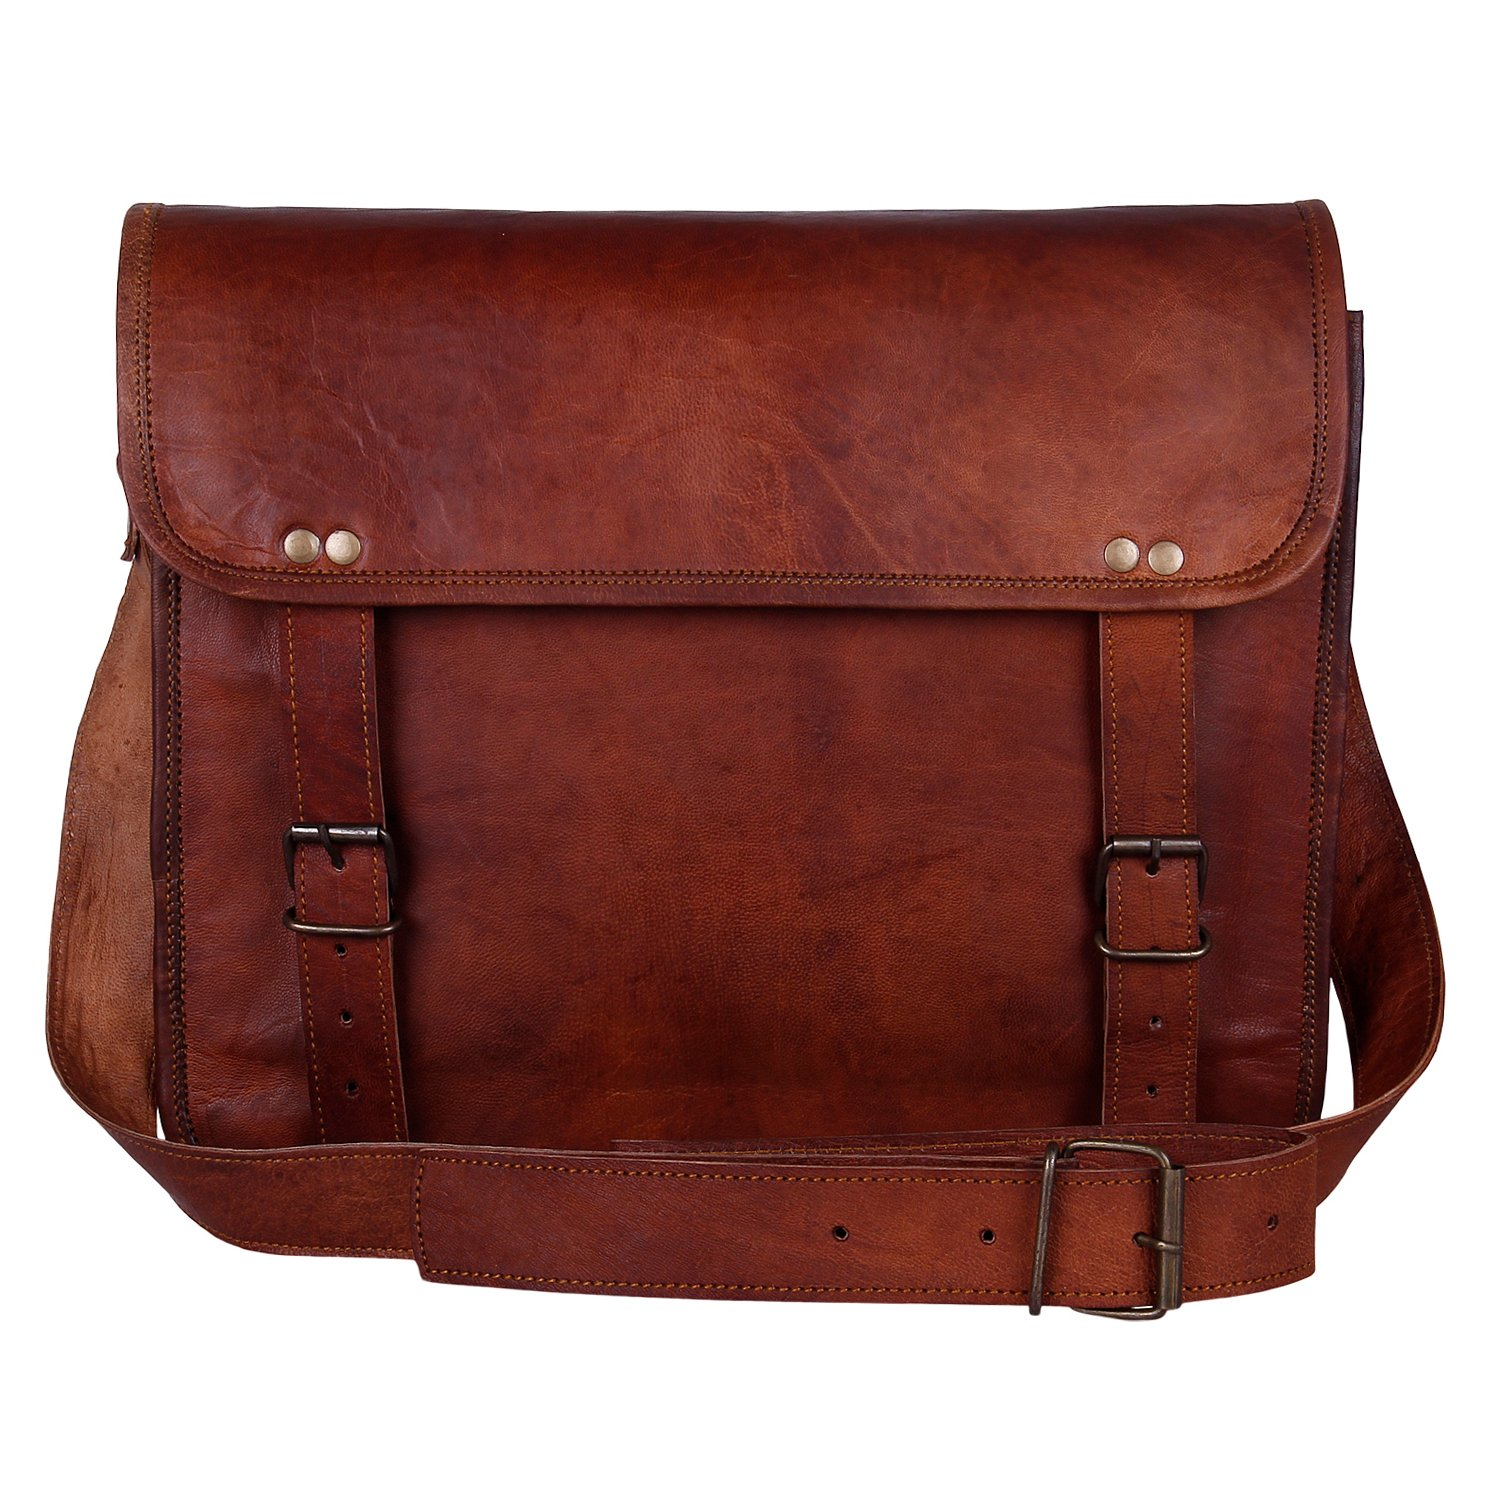 Rustic town 13 cross handle satchel laptop bag